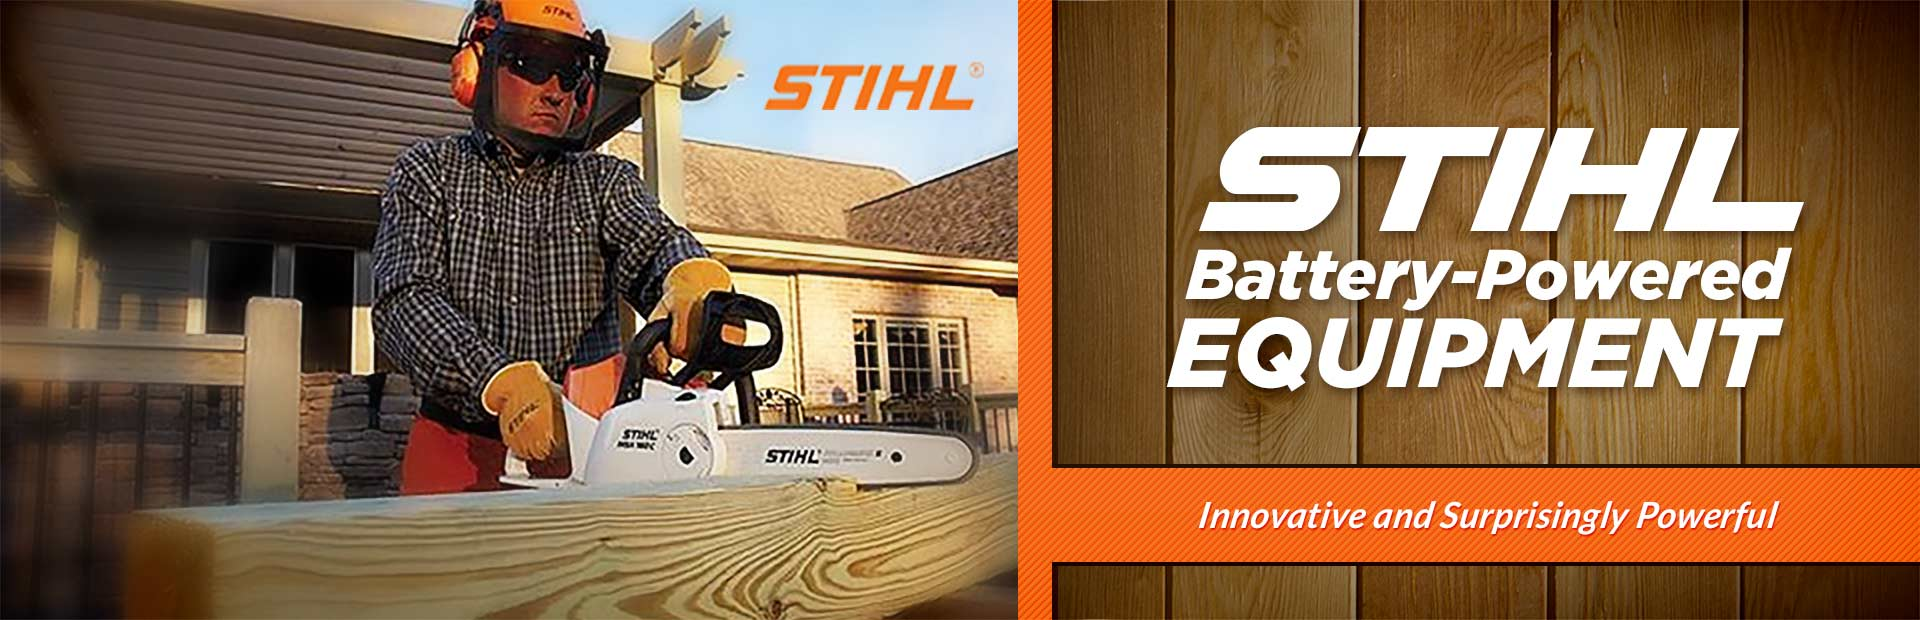 Congenial Stihl Click Here To View Western Mower Engine Ca Toro Lawn Mower Oil Recommendation Toro Lawn Mower Oil Change houzz-02 Toro Lawn Mower Oil